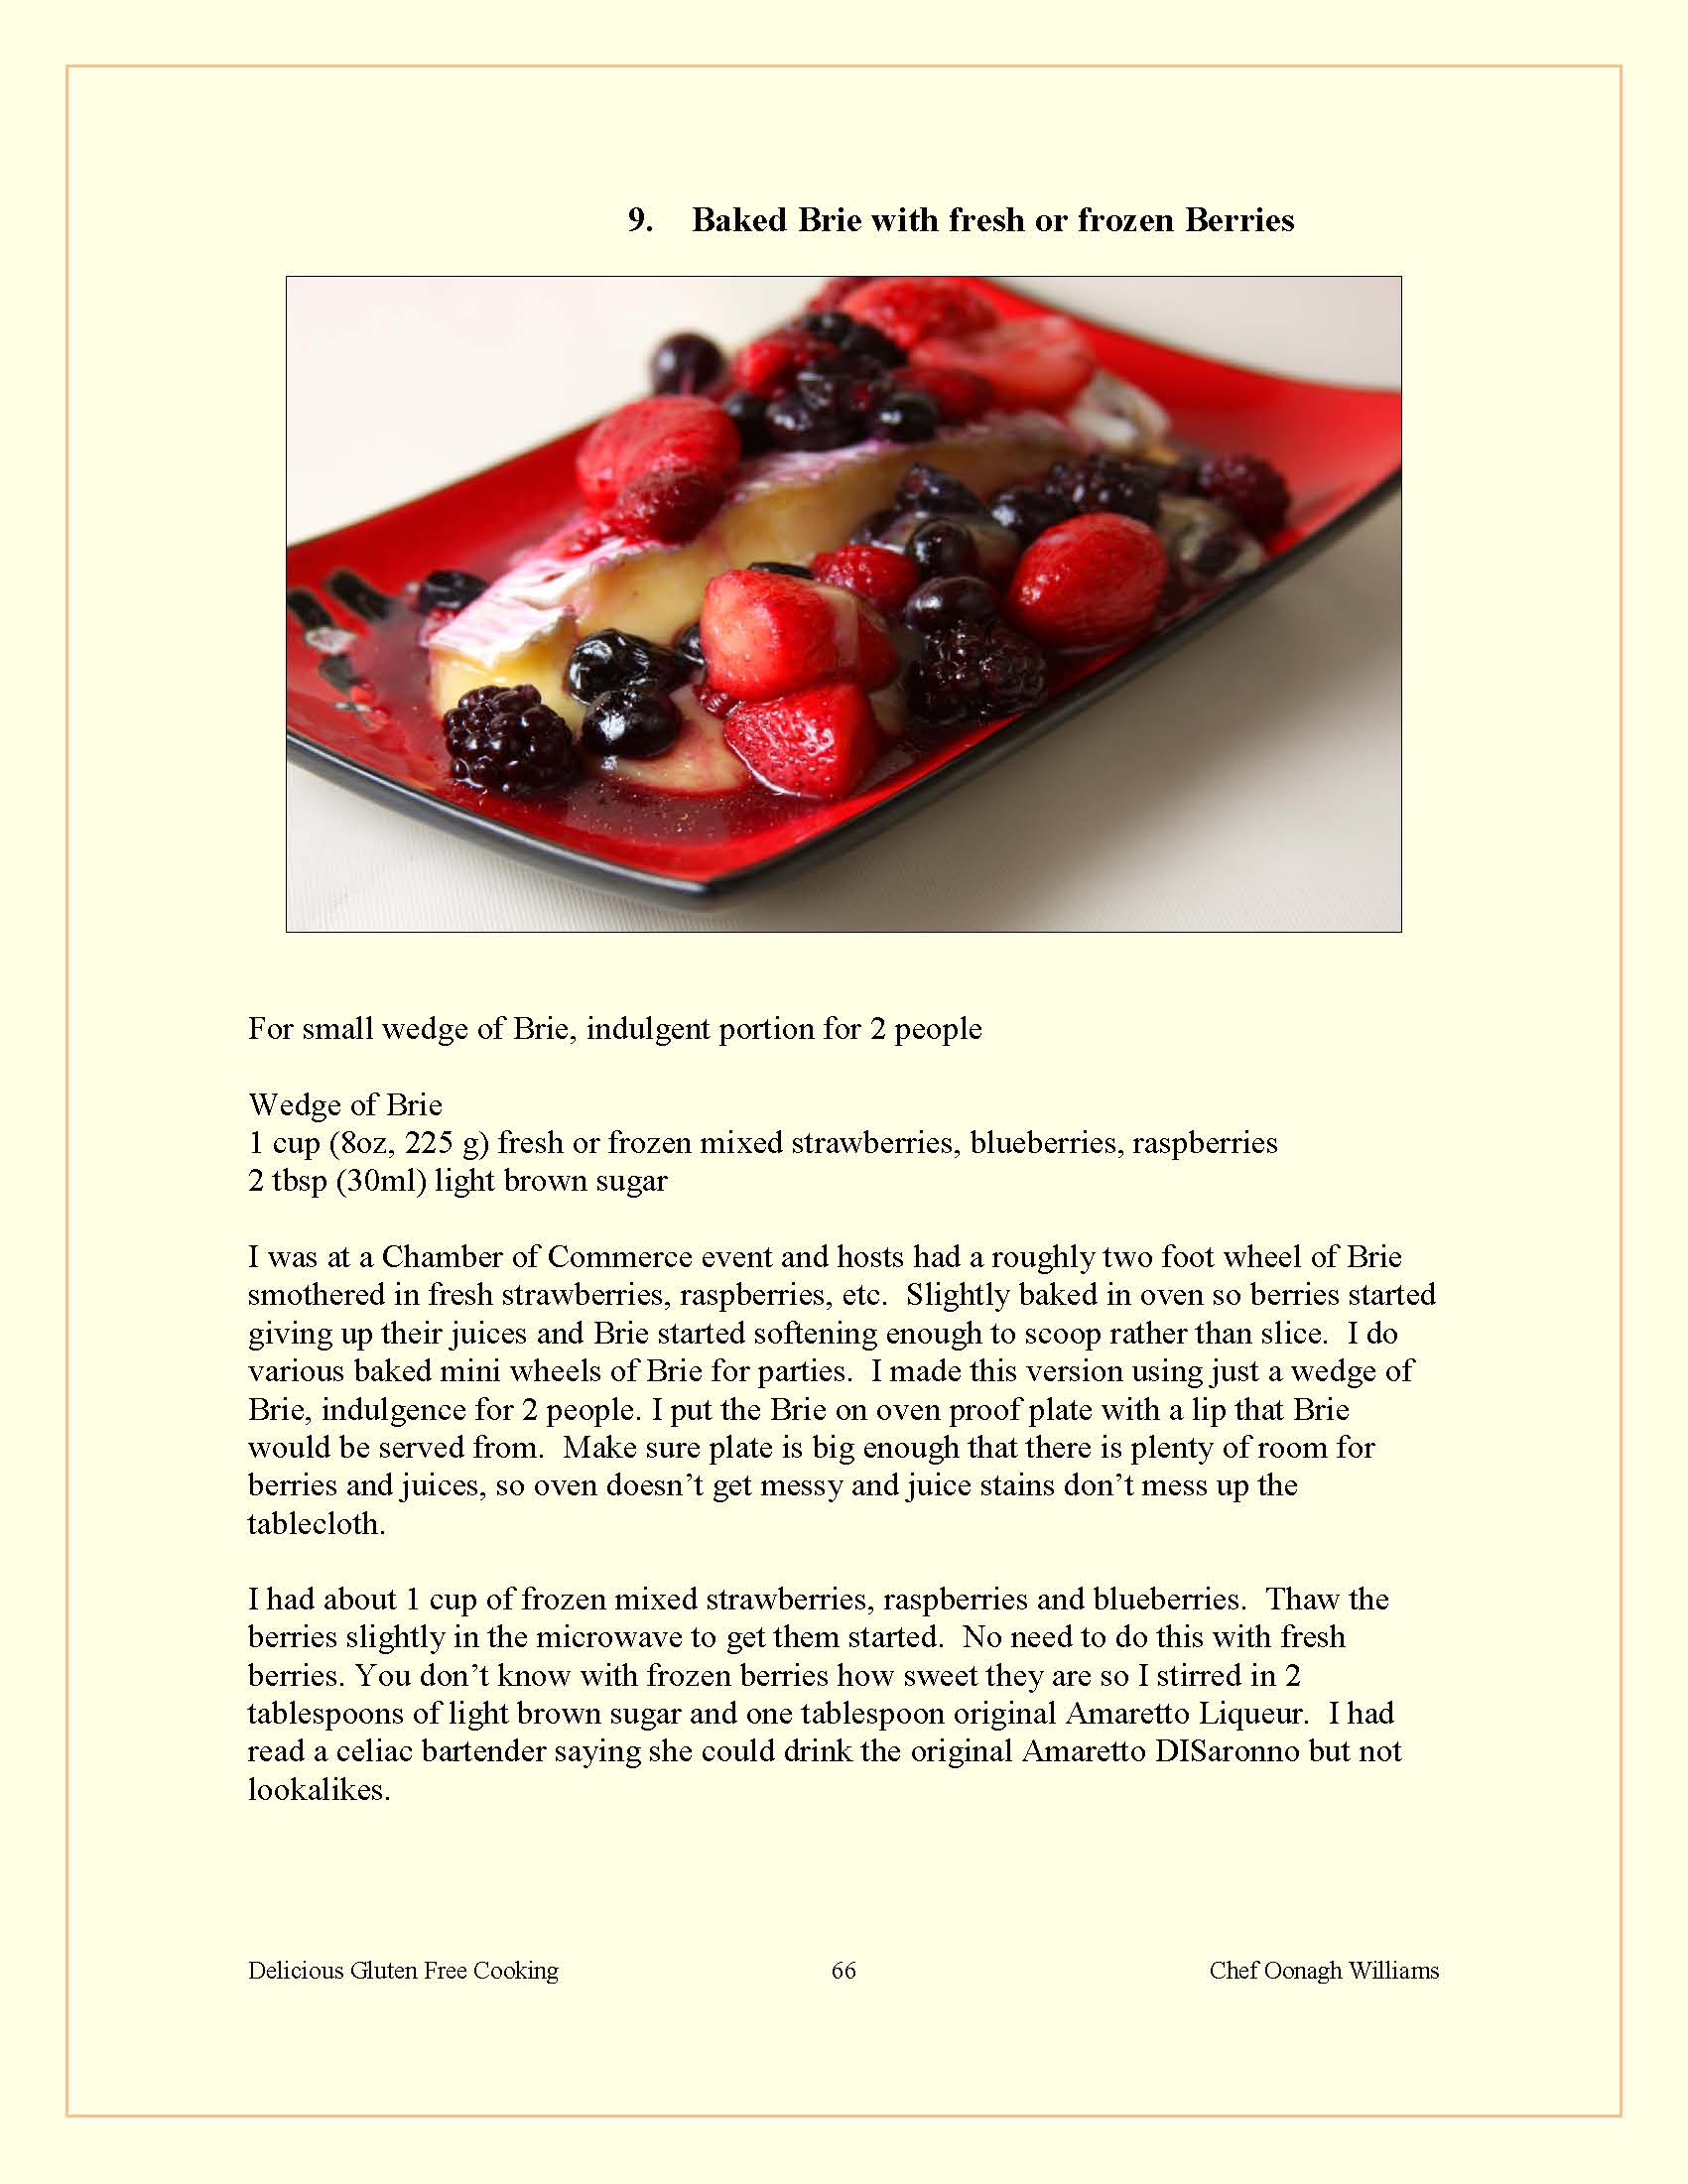 tv chef oonagh s 200 page gluten free ecookbook 70 recipes